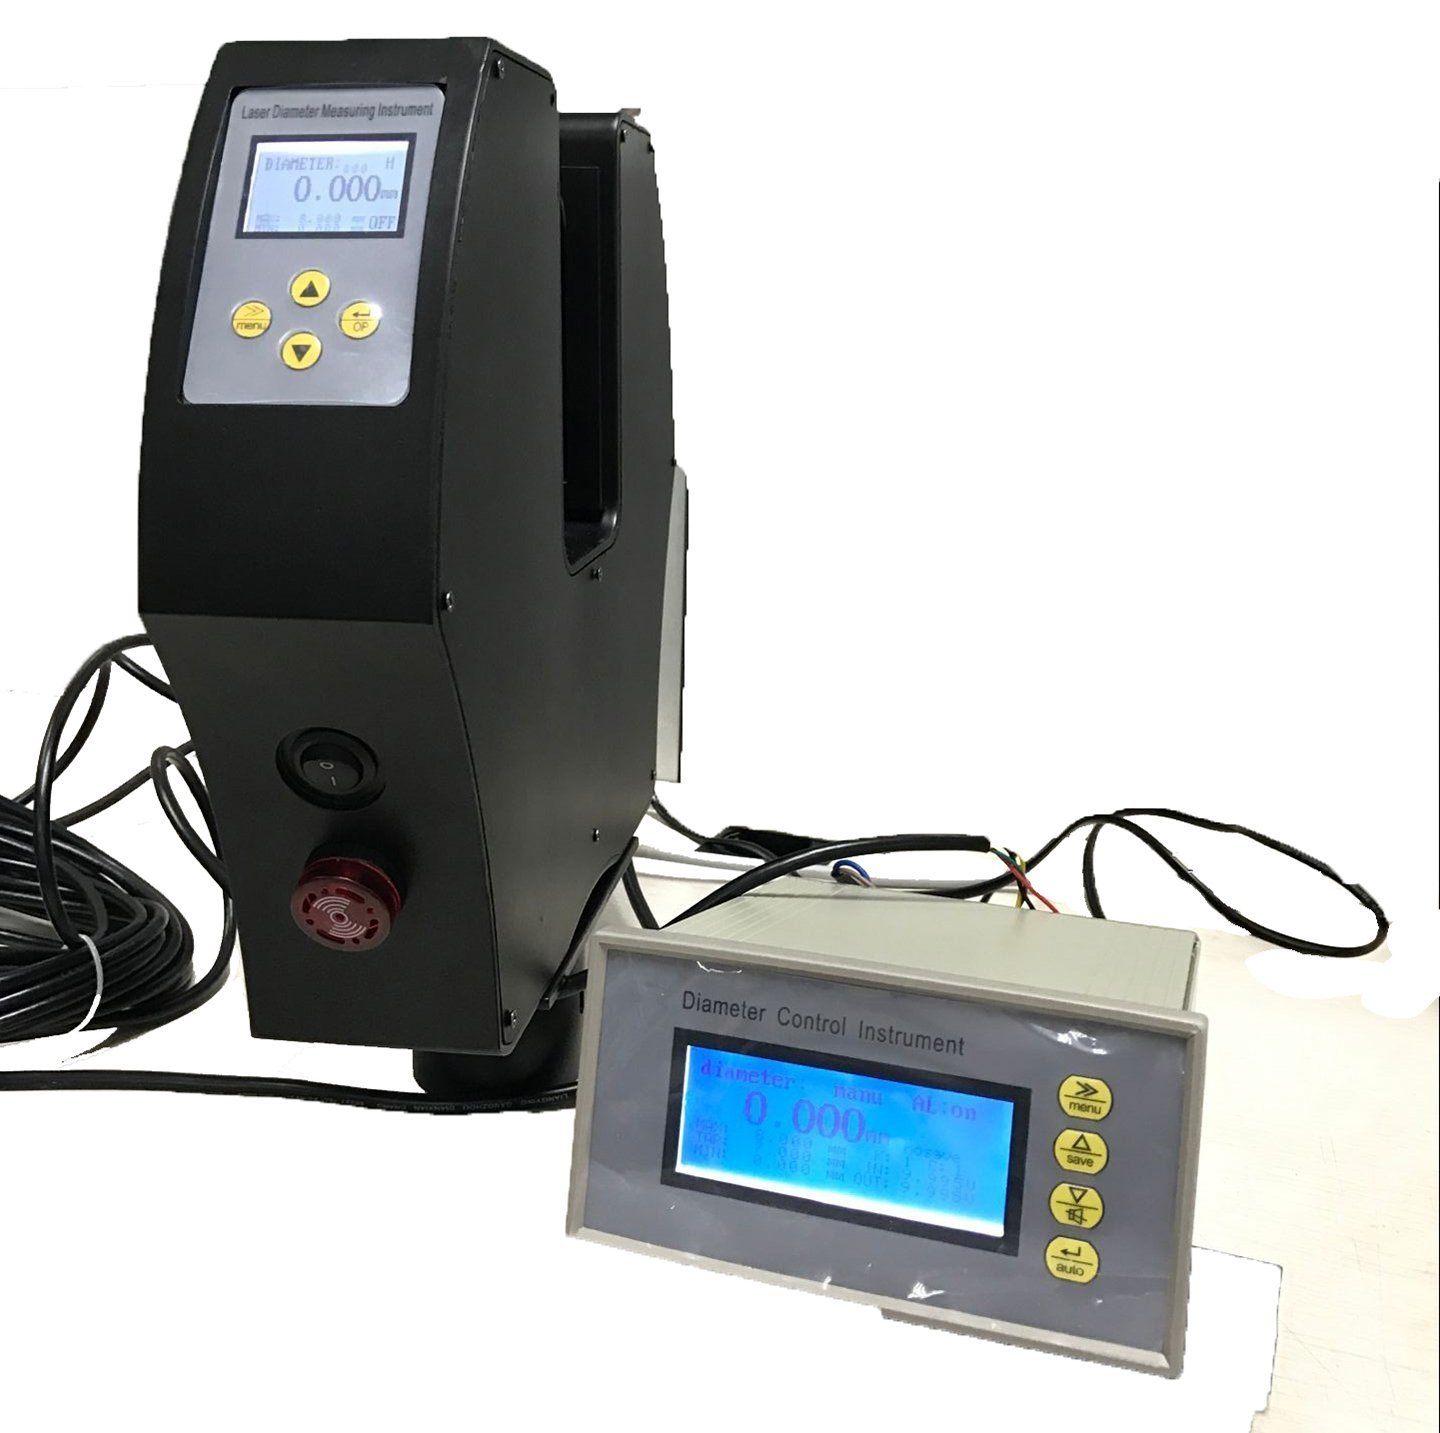 VETUS INSTRUMENTS ETB-05B Non-contact Laser Diameter Measurement Meter Tester Laser Diameter Gauge 0.2 to 30mm Laser Diameter Measuring Instrument Sensitivity 1um Accuracy ±2um Without the Tripod